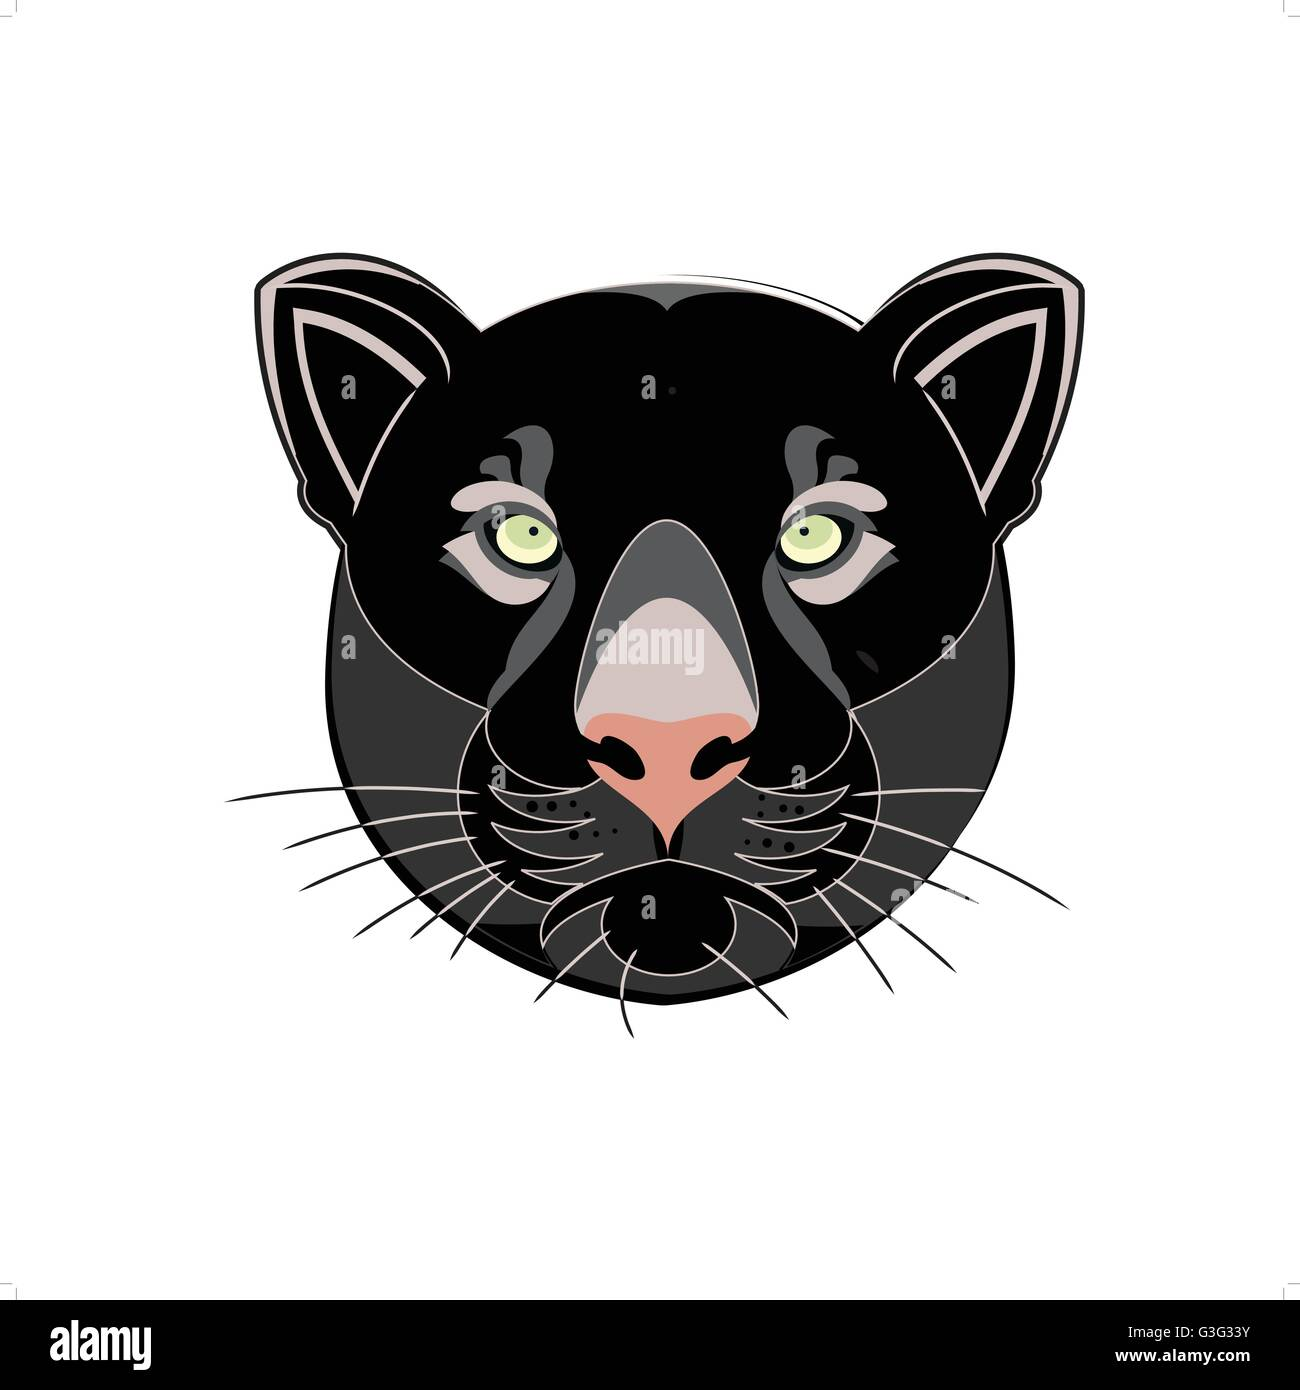 cb604f6f074 Beautiful black panther head silhouette vector illustration isolated on  white background.